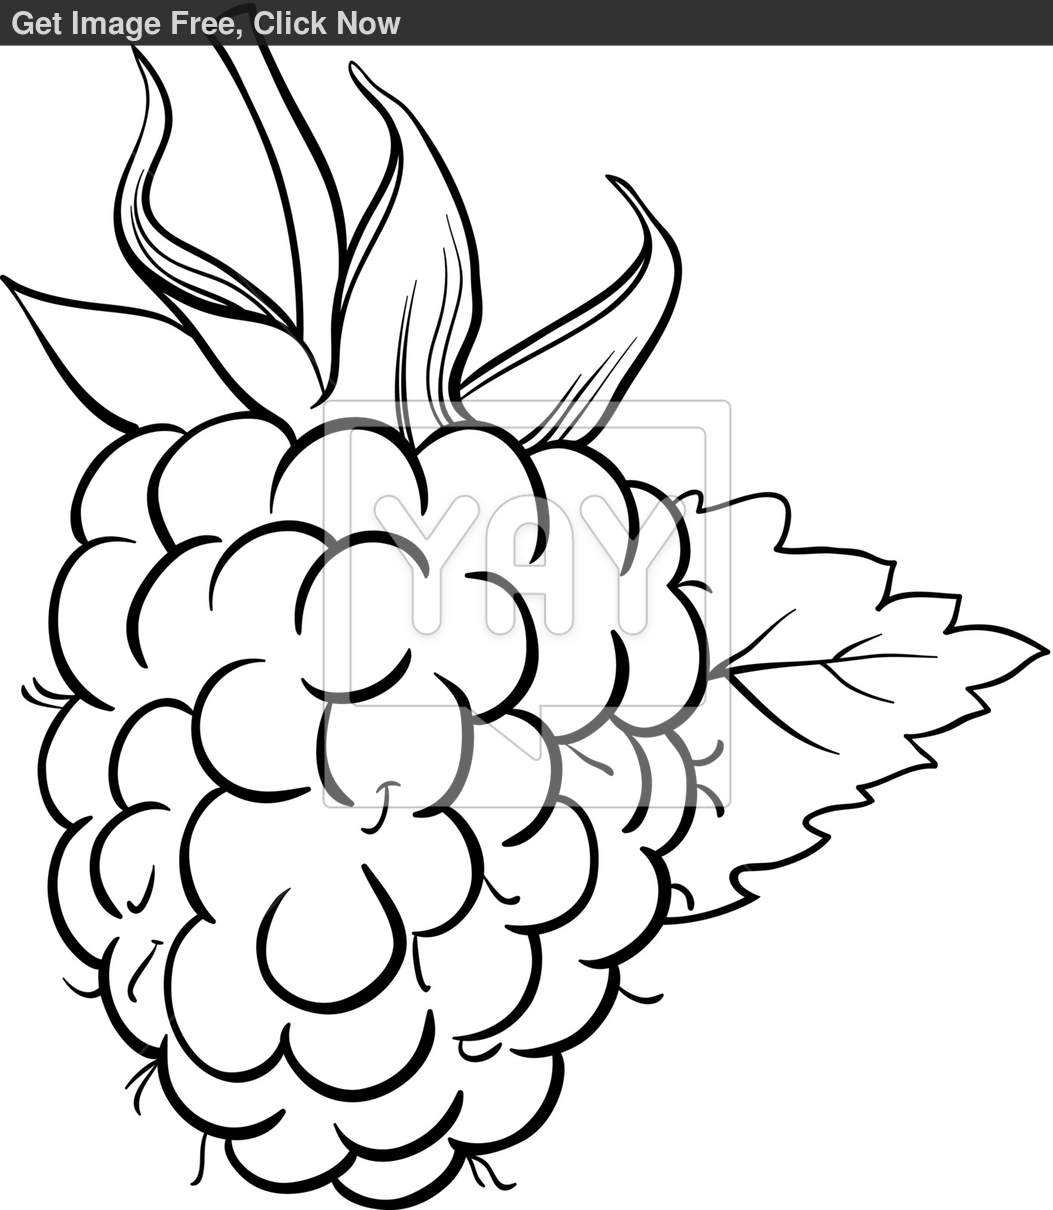 Raspberry coloring #1, Download drawings